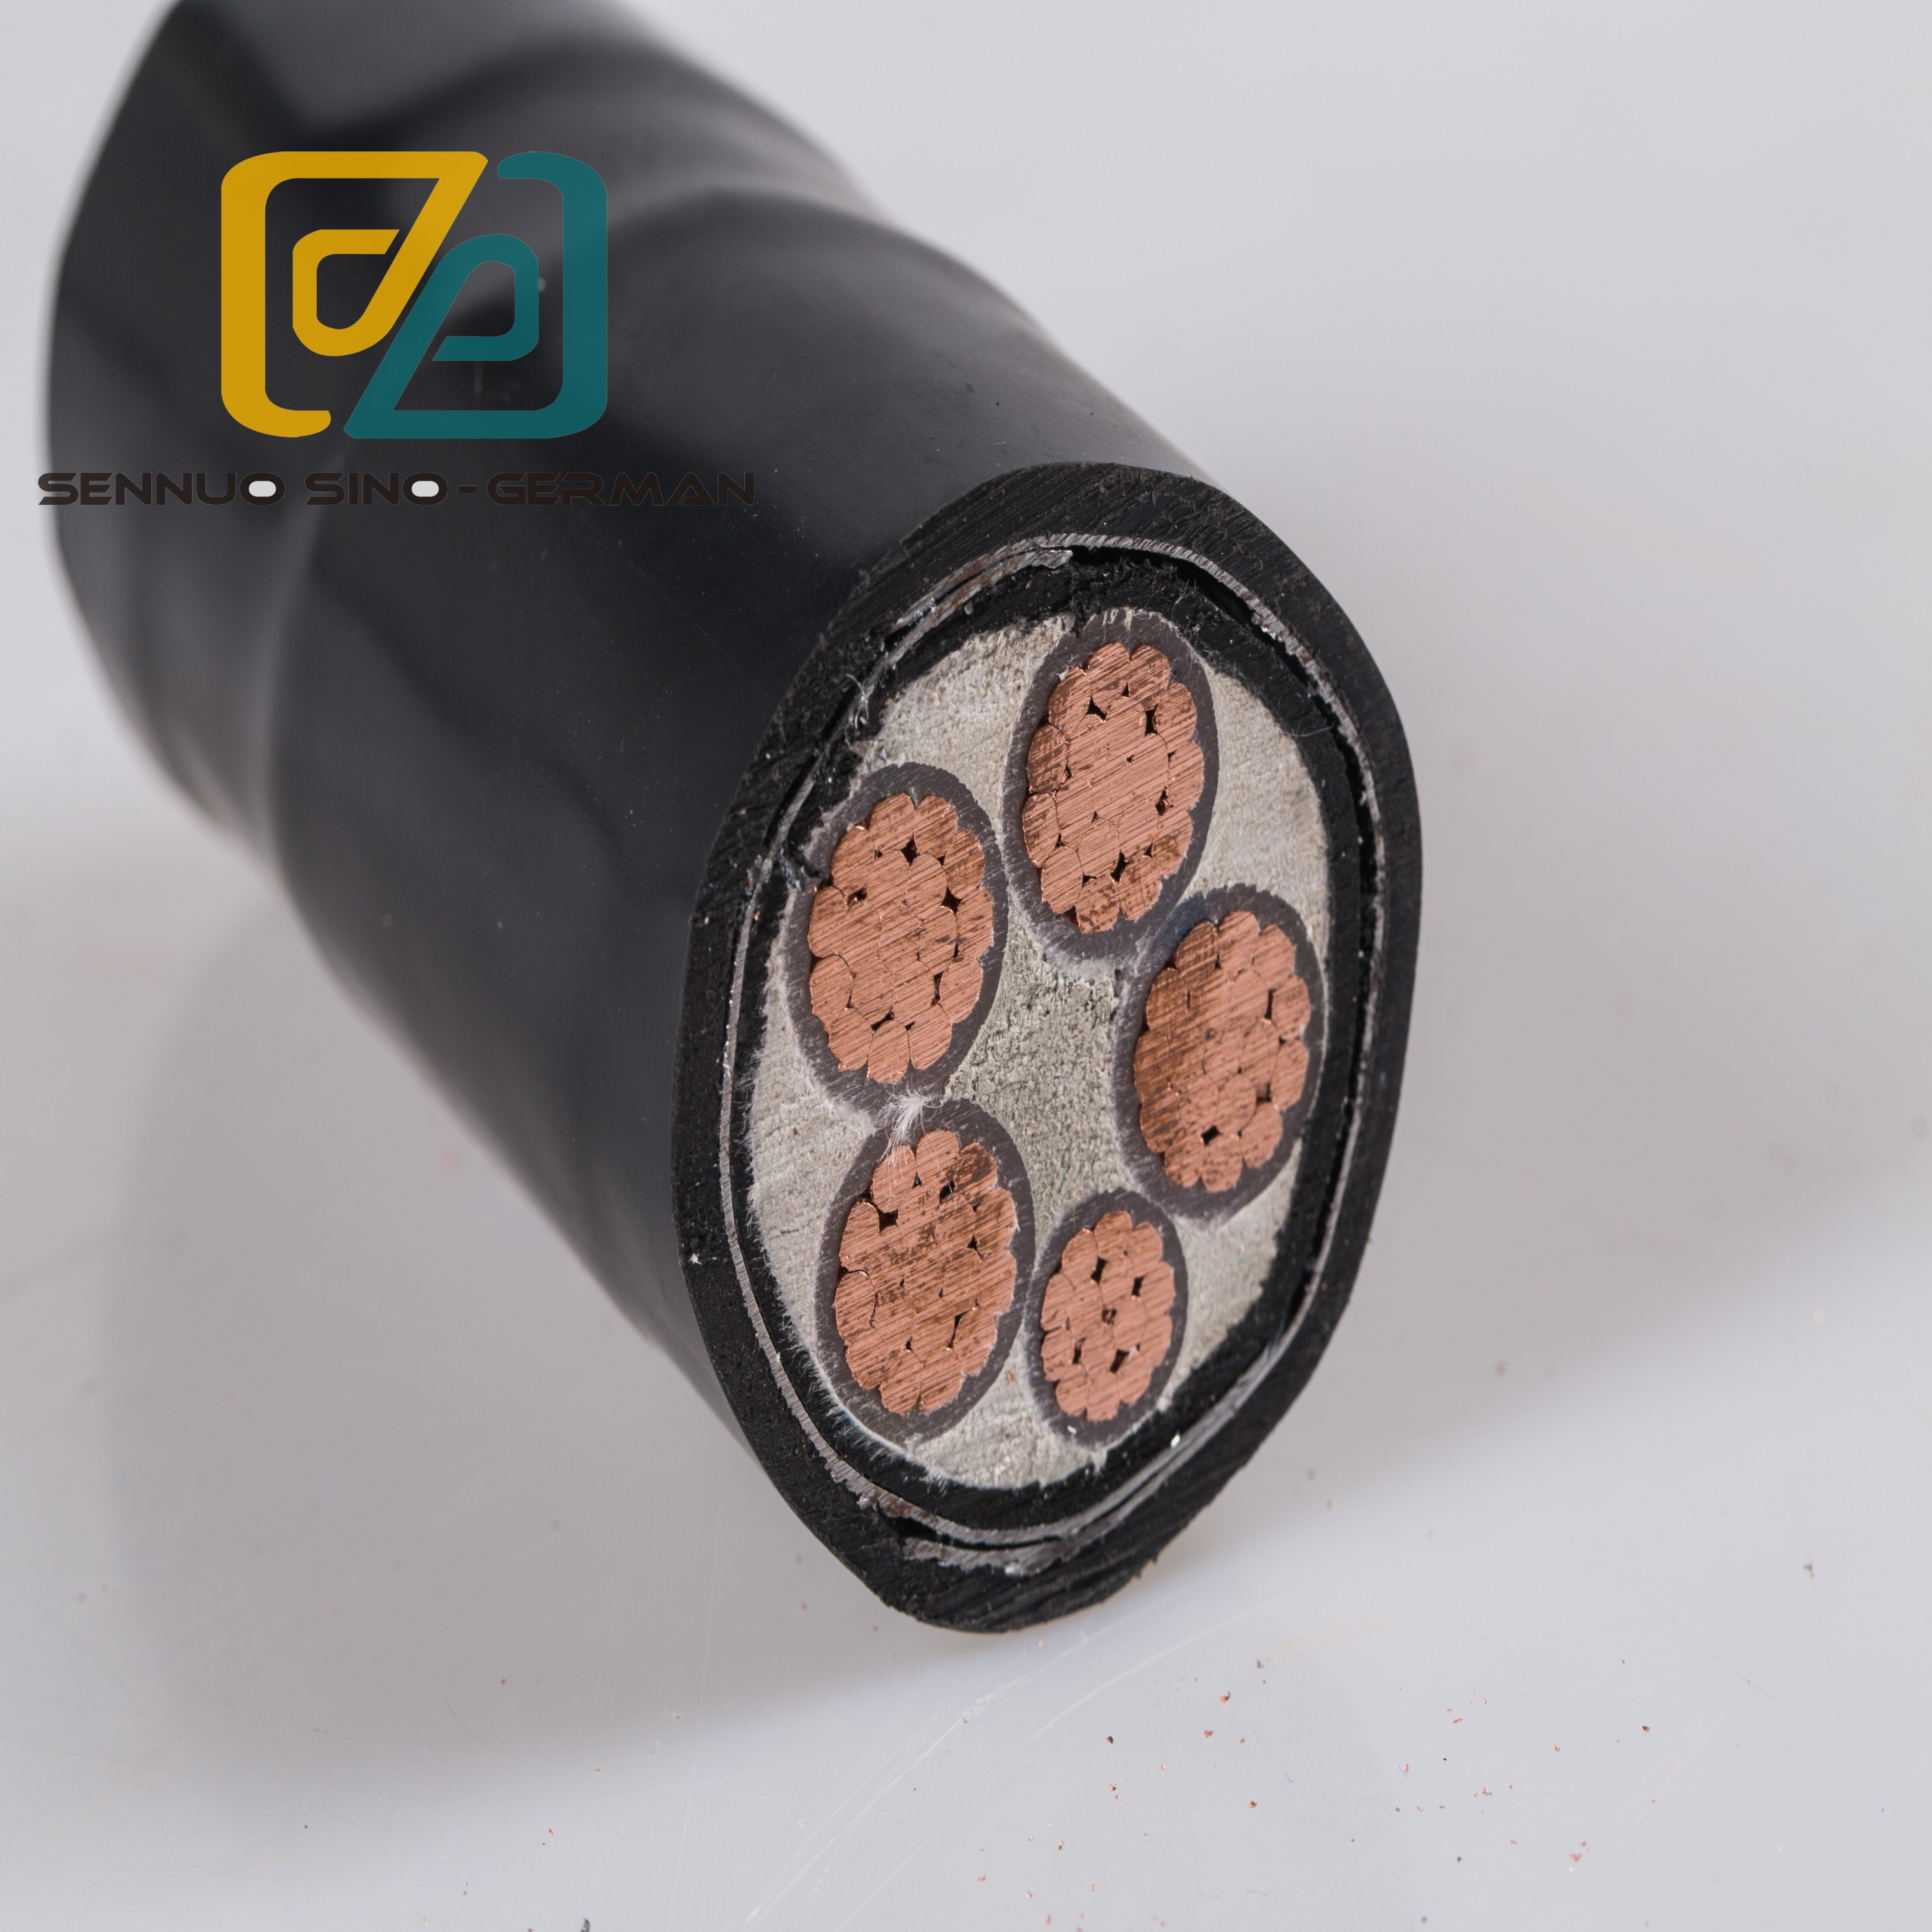 Bare Copper Grounding Wire Wholesale Ground Suppliers Alibaba Flameretardant Flexible Electrical Bv Bvvb Bvr